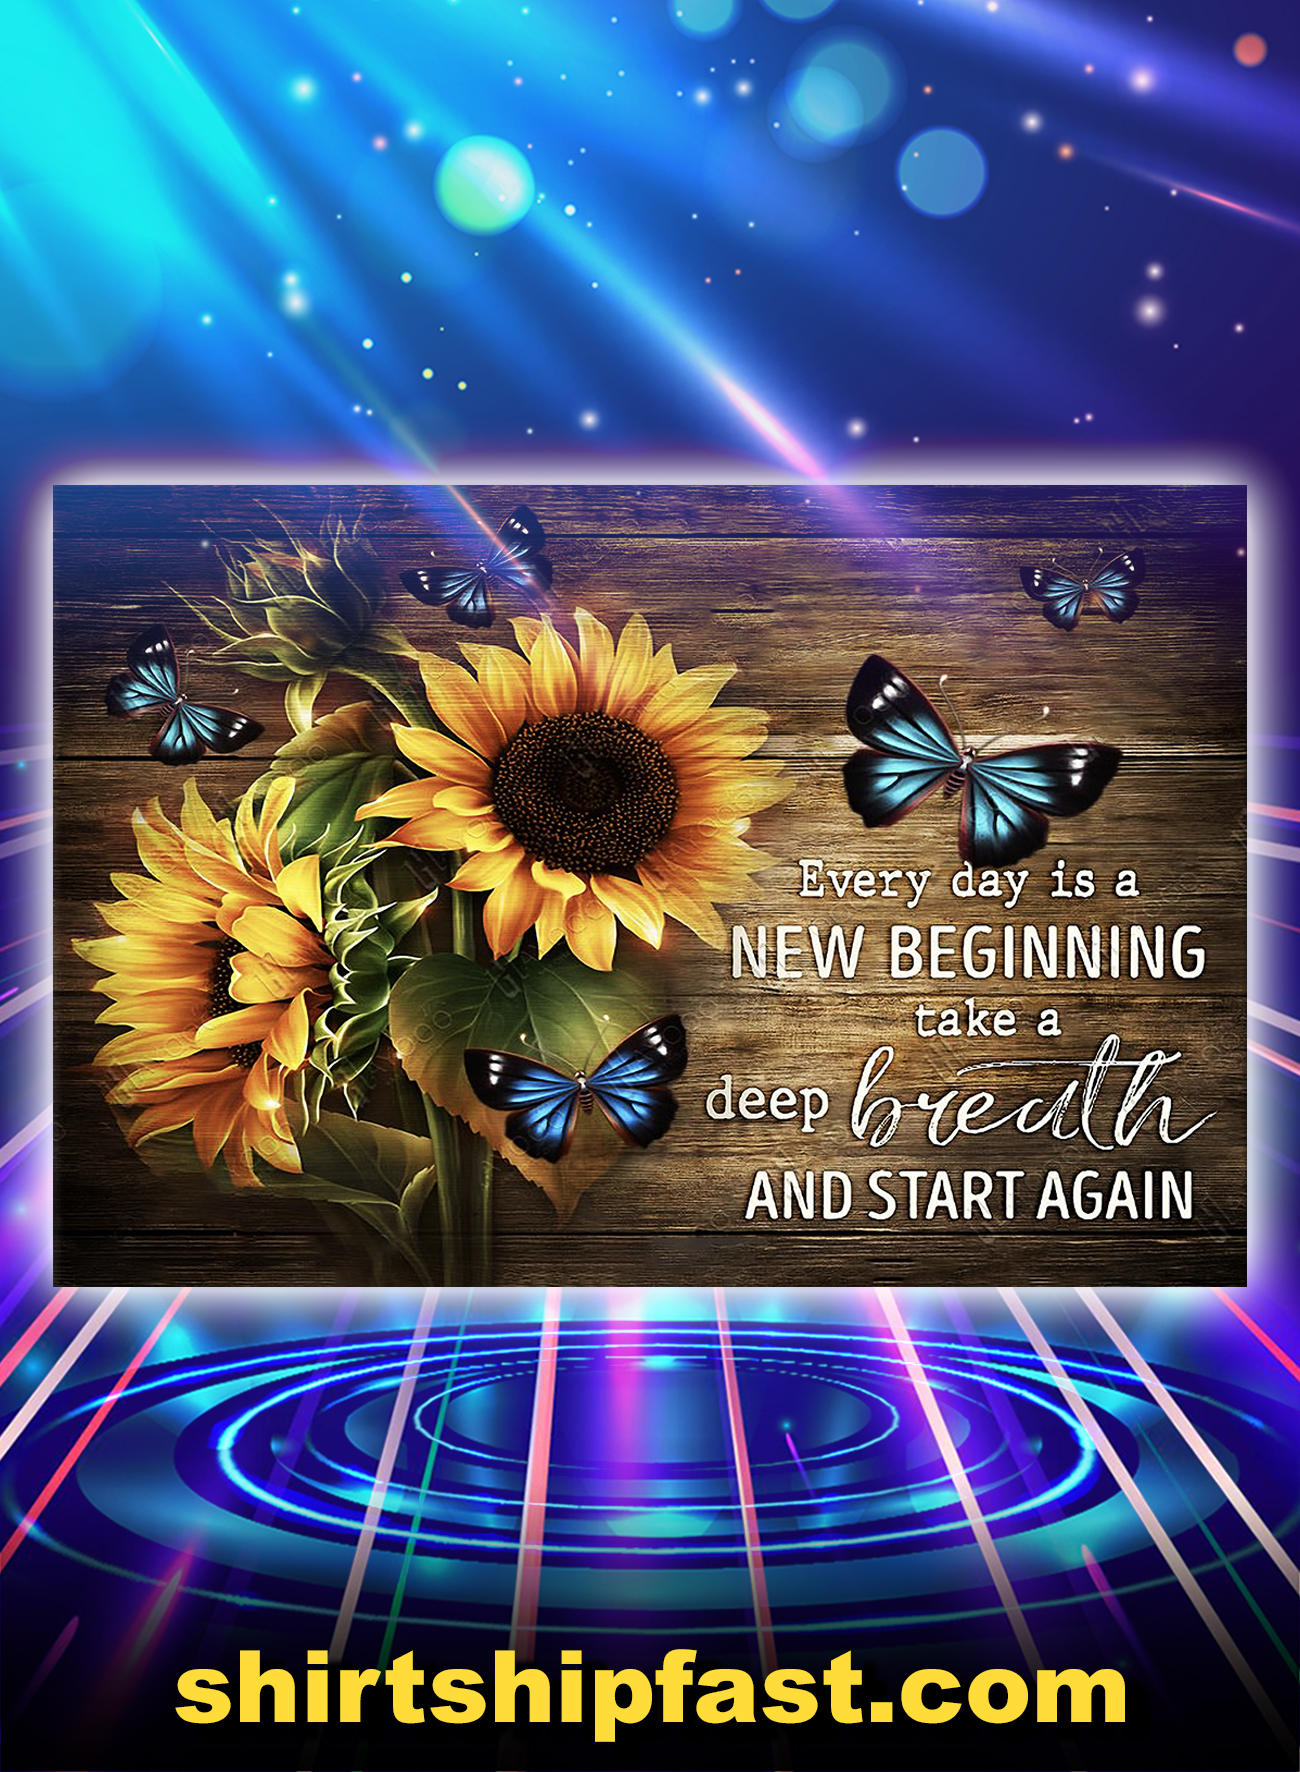 Sunflower butterfly everyday is a new beginning poster